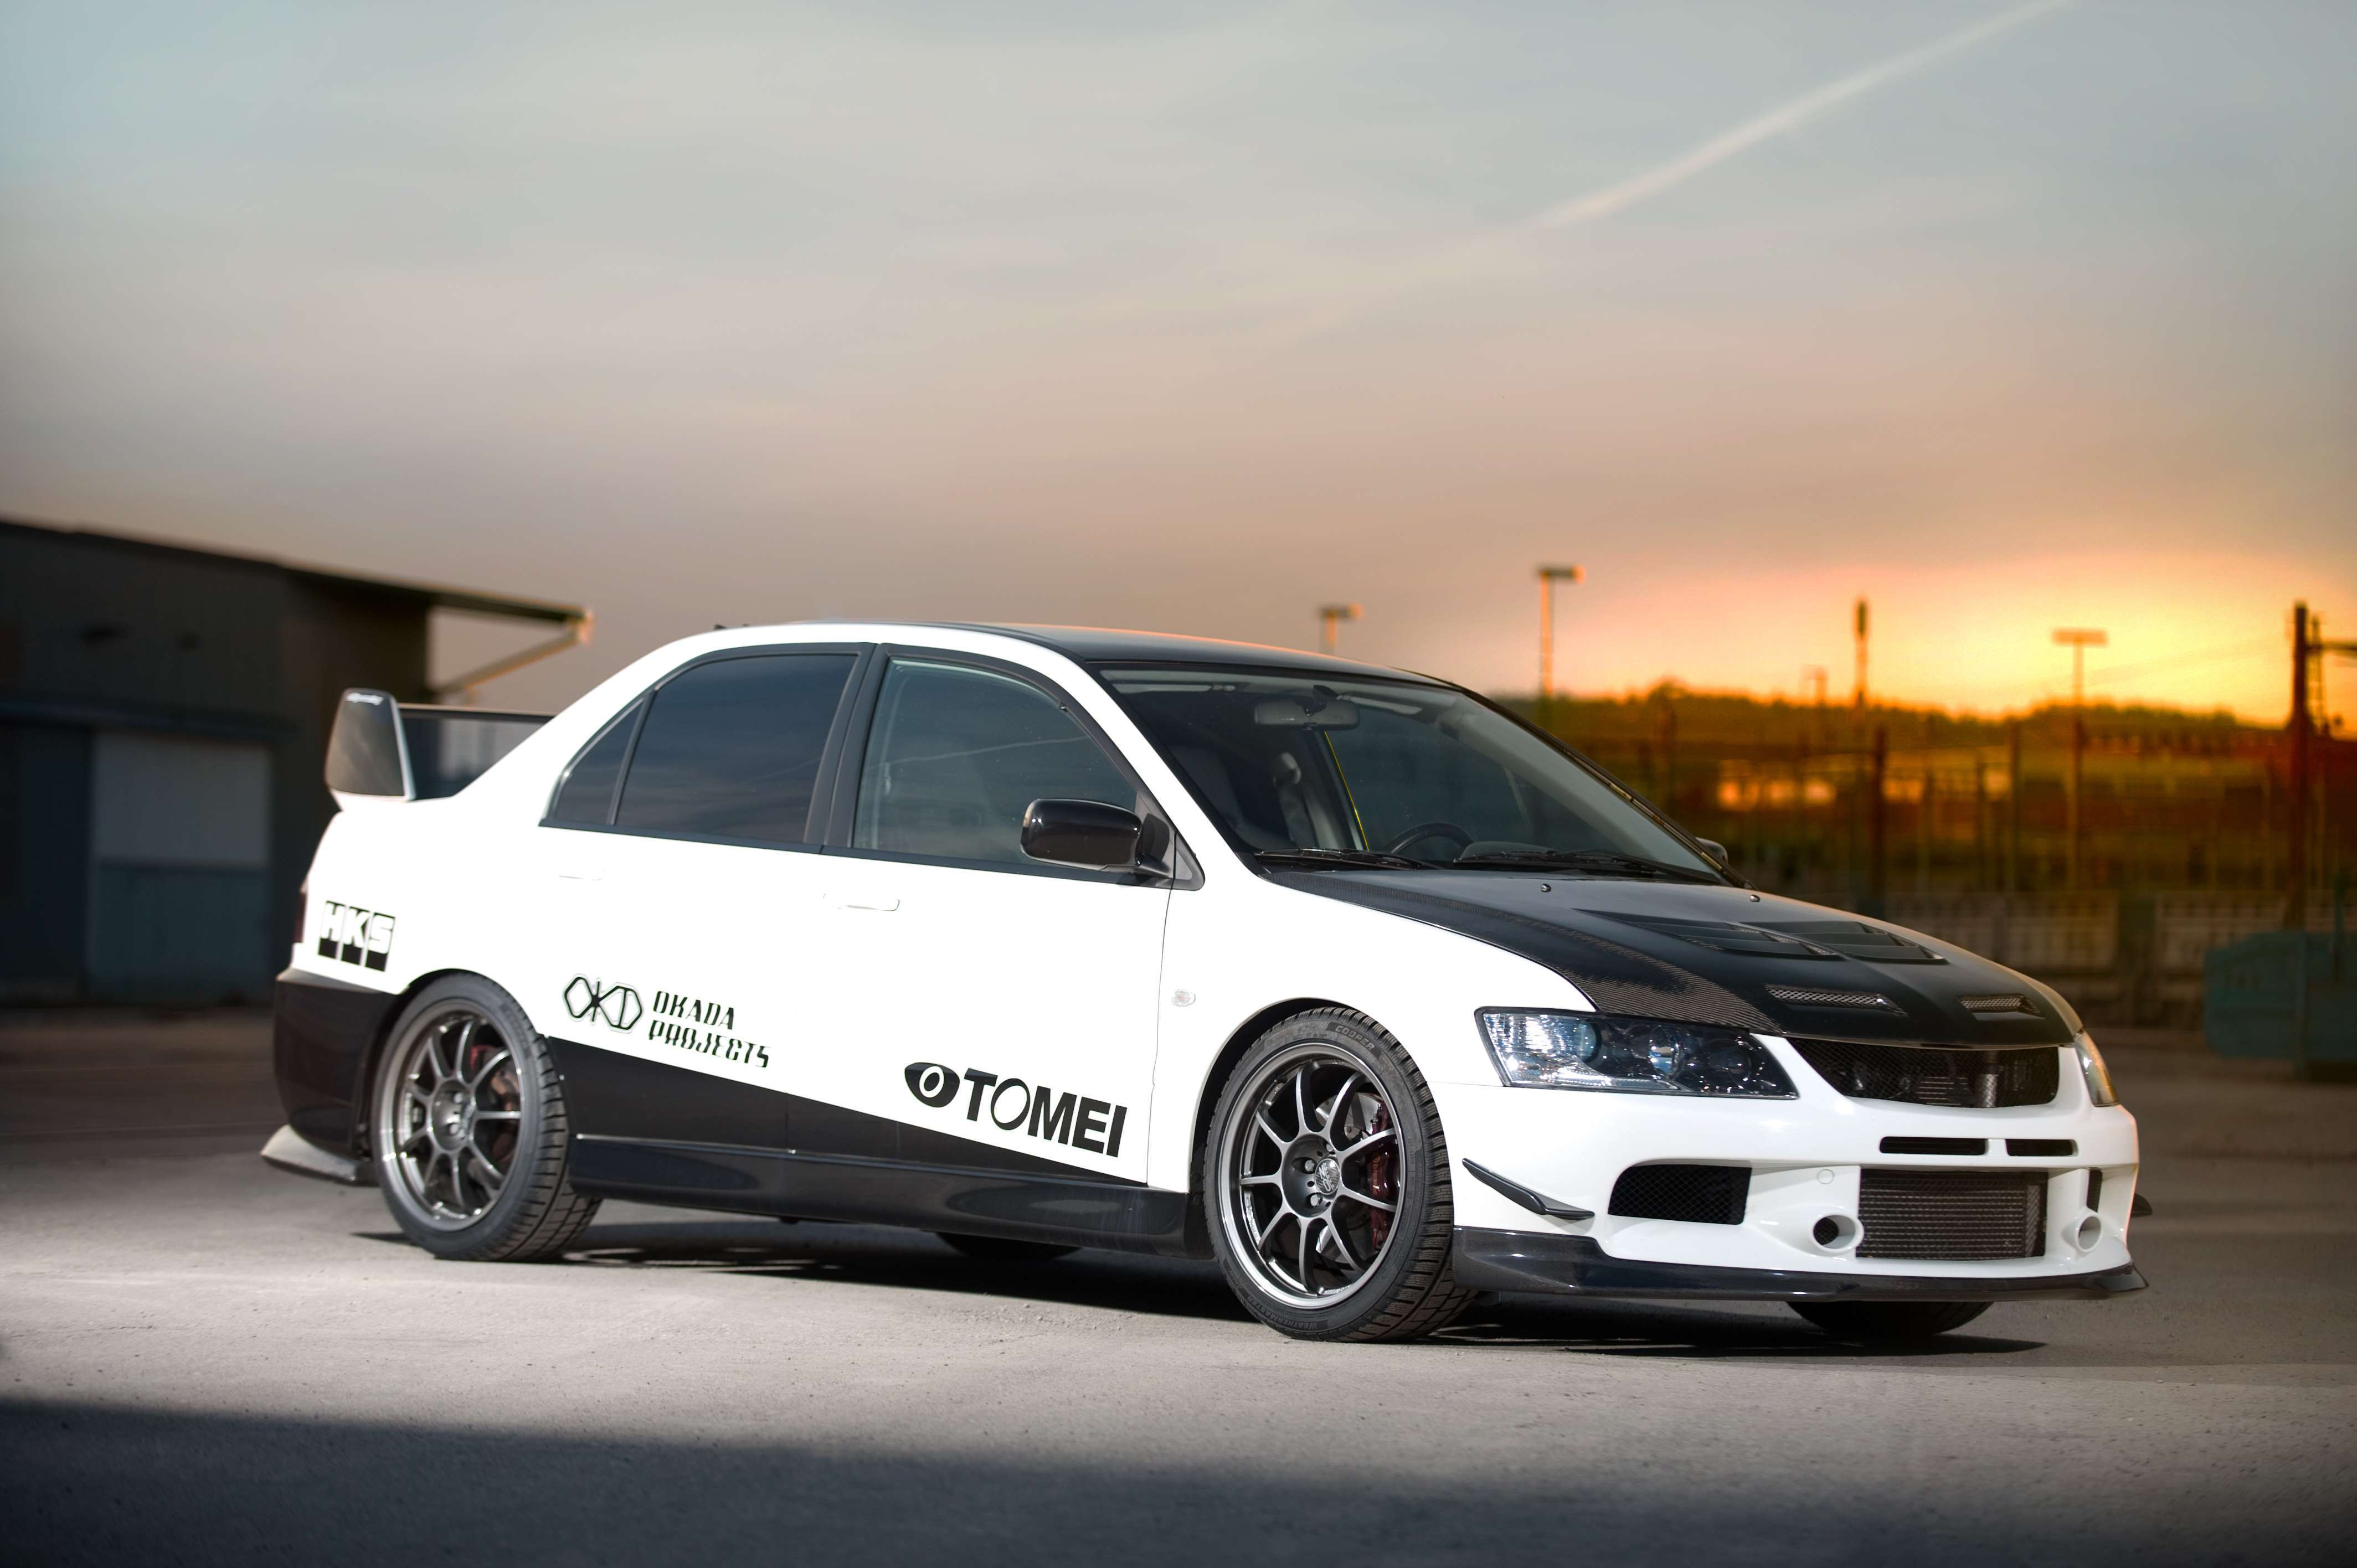 Mitsubishi Evolution Ix Wallpapers : Hd Car Wallpapers